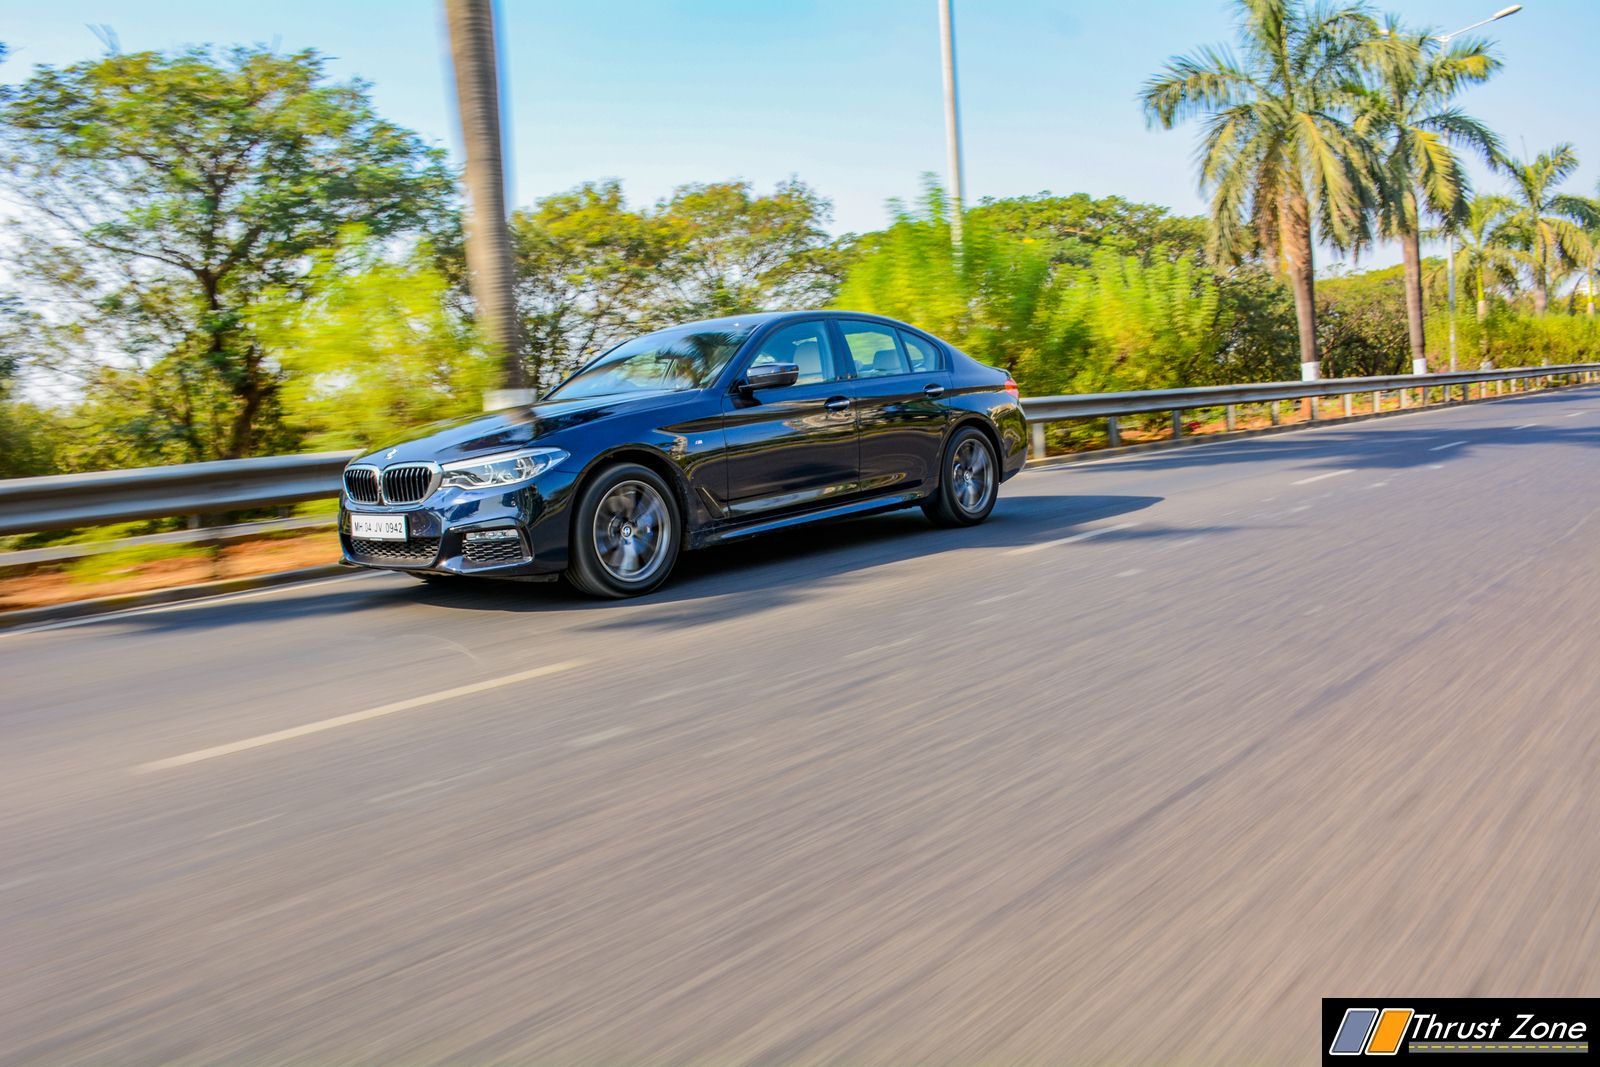 http://www.thrustzone.com/wp-content/uploads/2019/01/2018-BMW-530d-India-Review-5.jpg